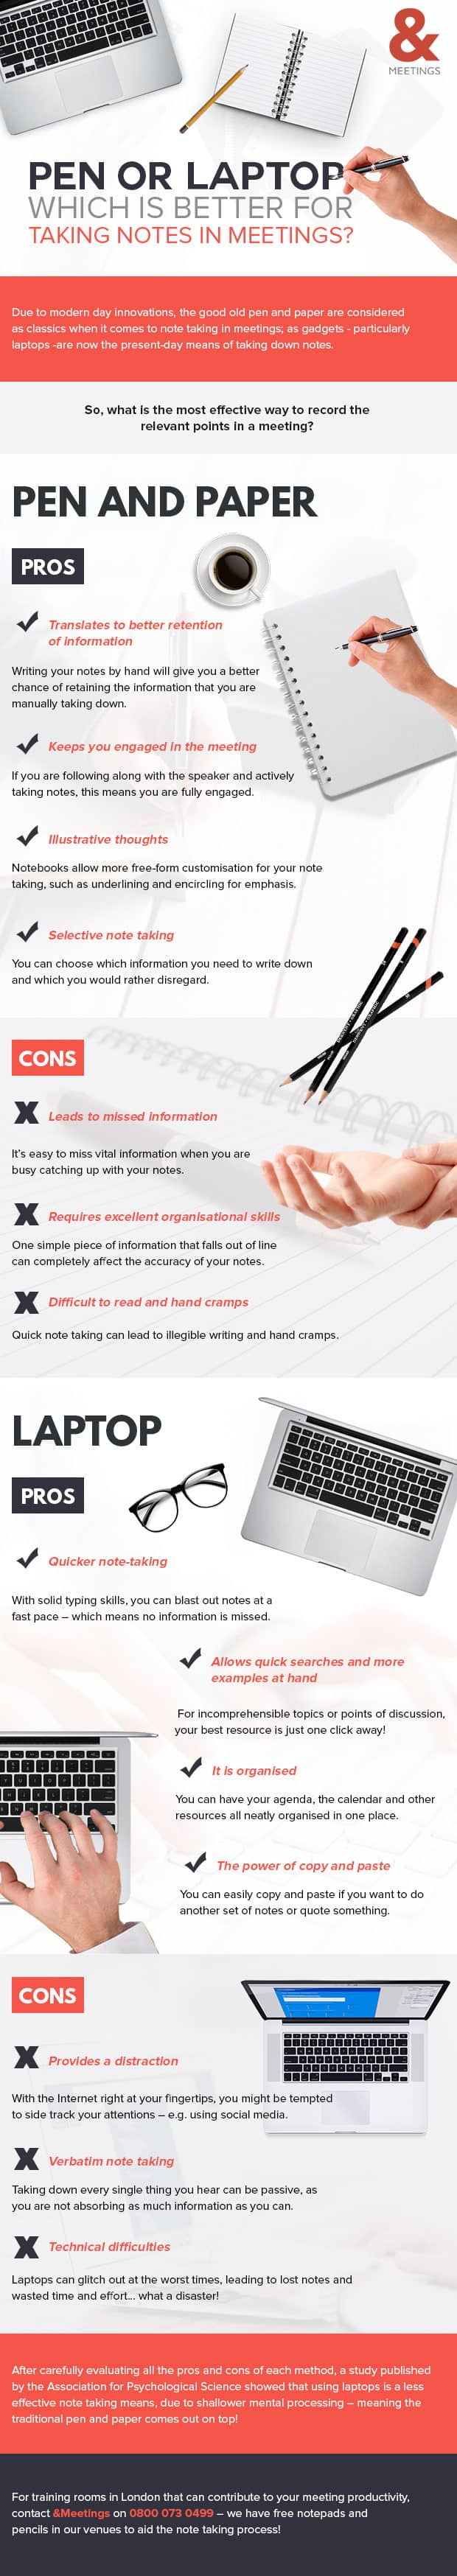 Infographic: Pen or Laptop: Which is Better for Taking Notes in Meetings?